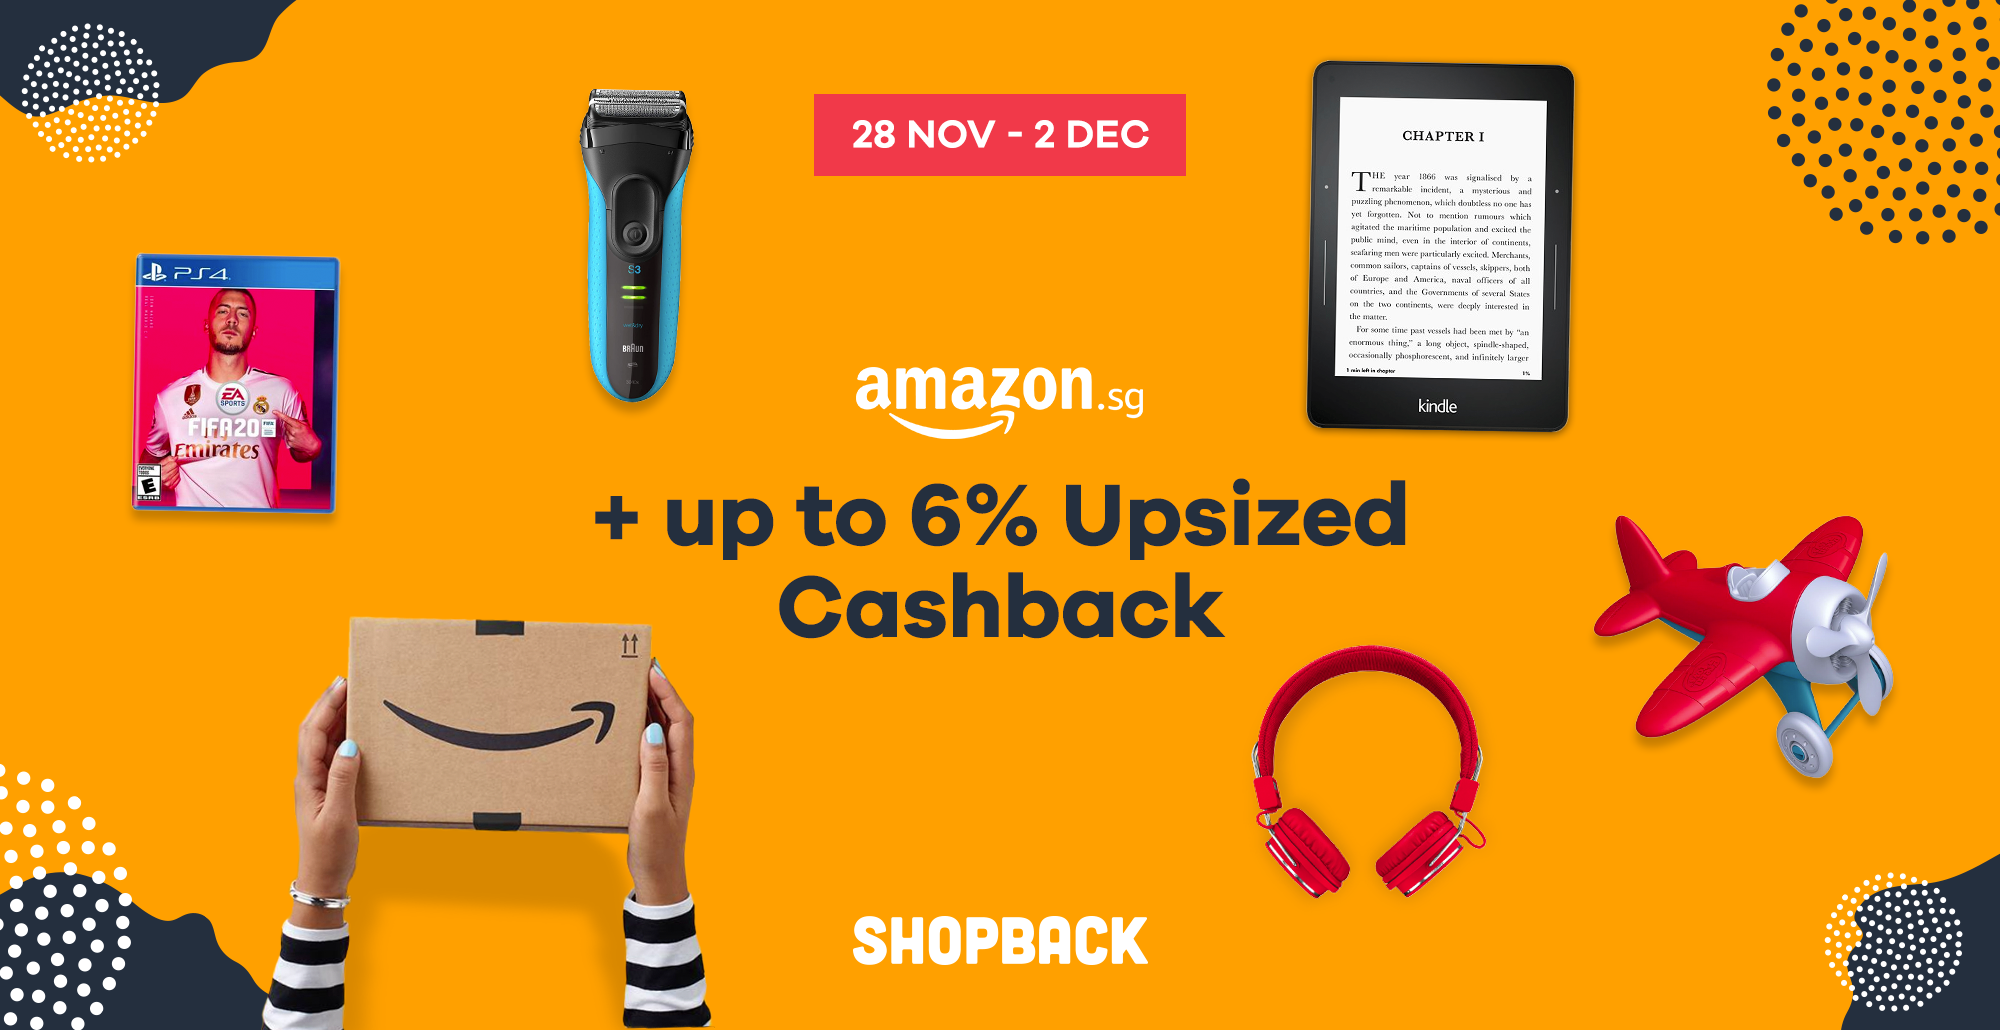 50 Amazon Christmas Gift Ideas With Up To 76 Discount During The Bfcm Sales